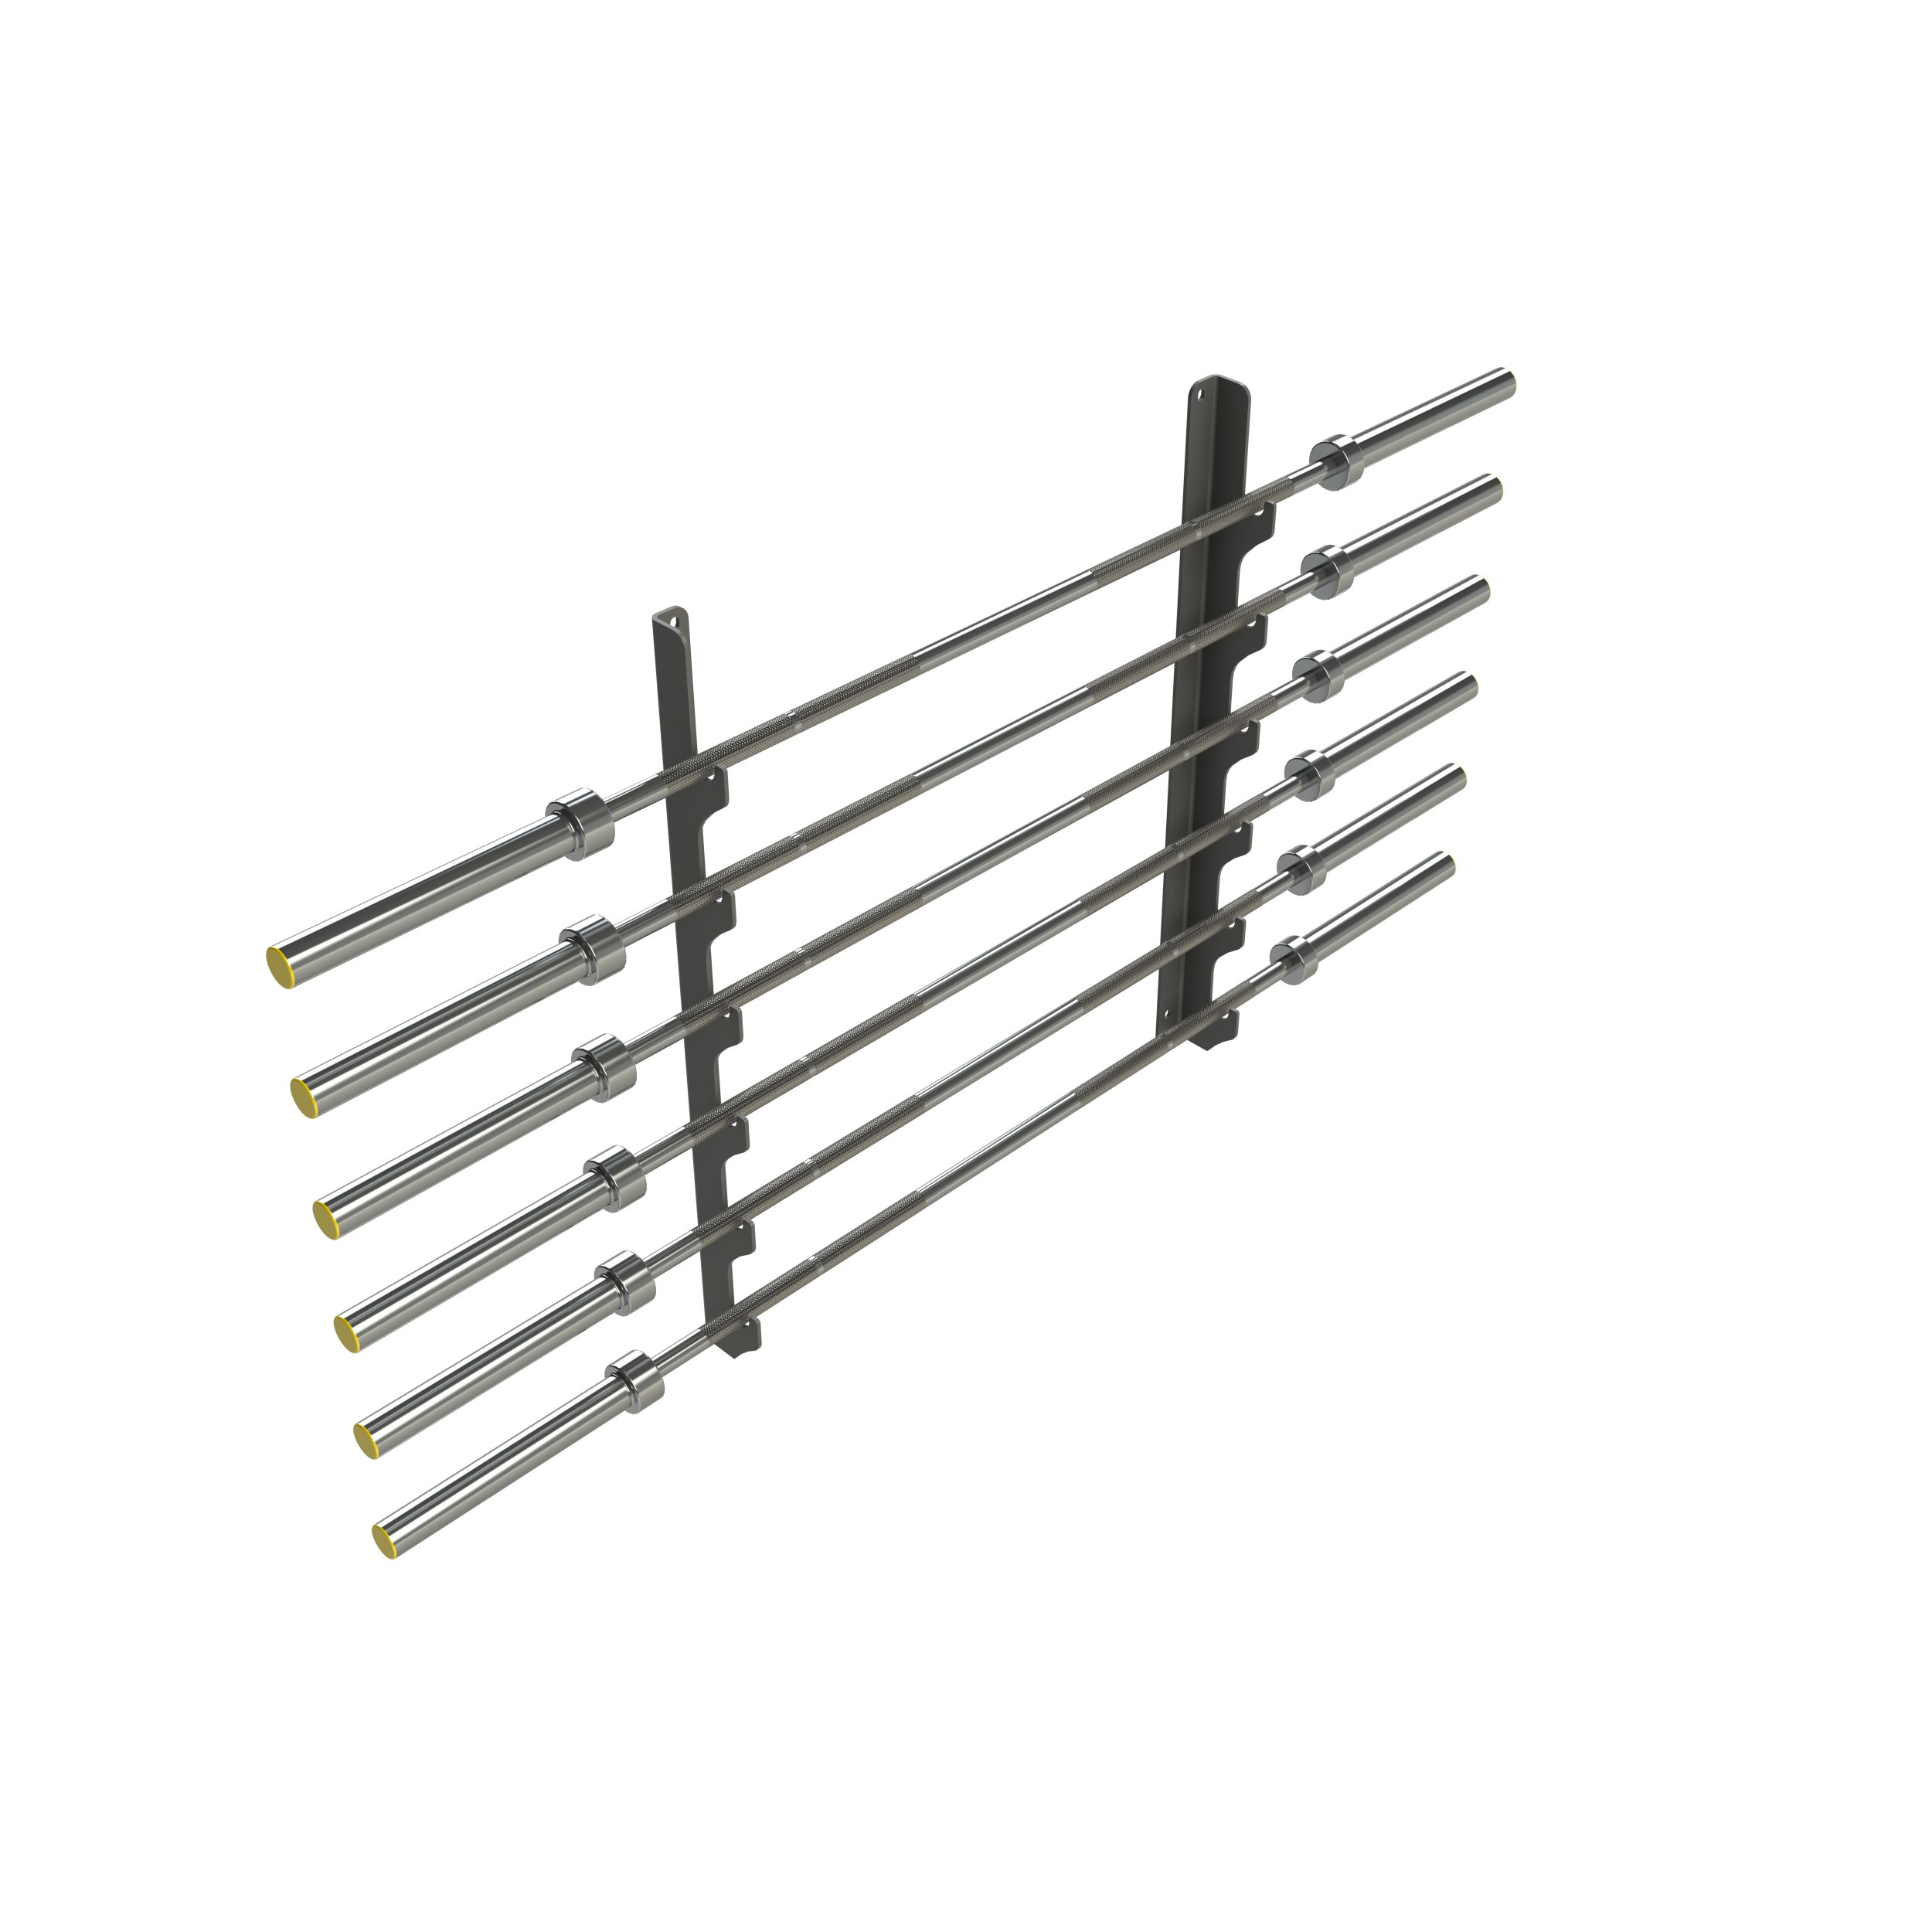 Wall Mounted Olympic Bar Rack - Grey